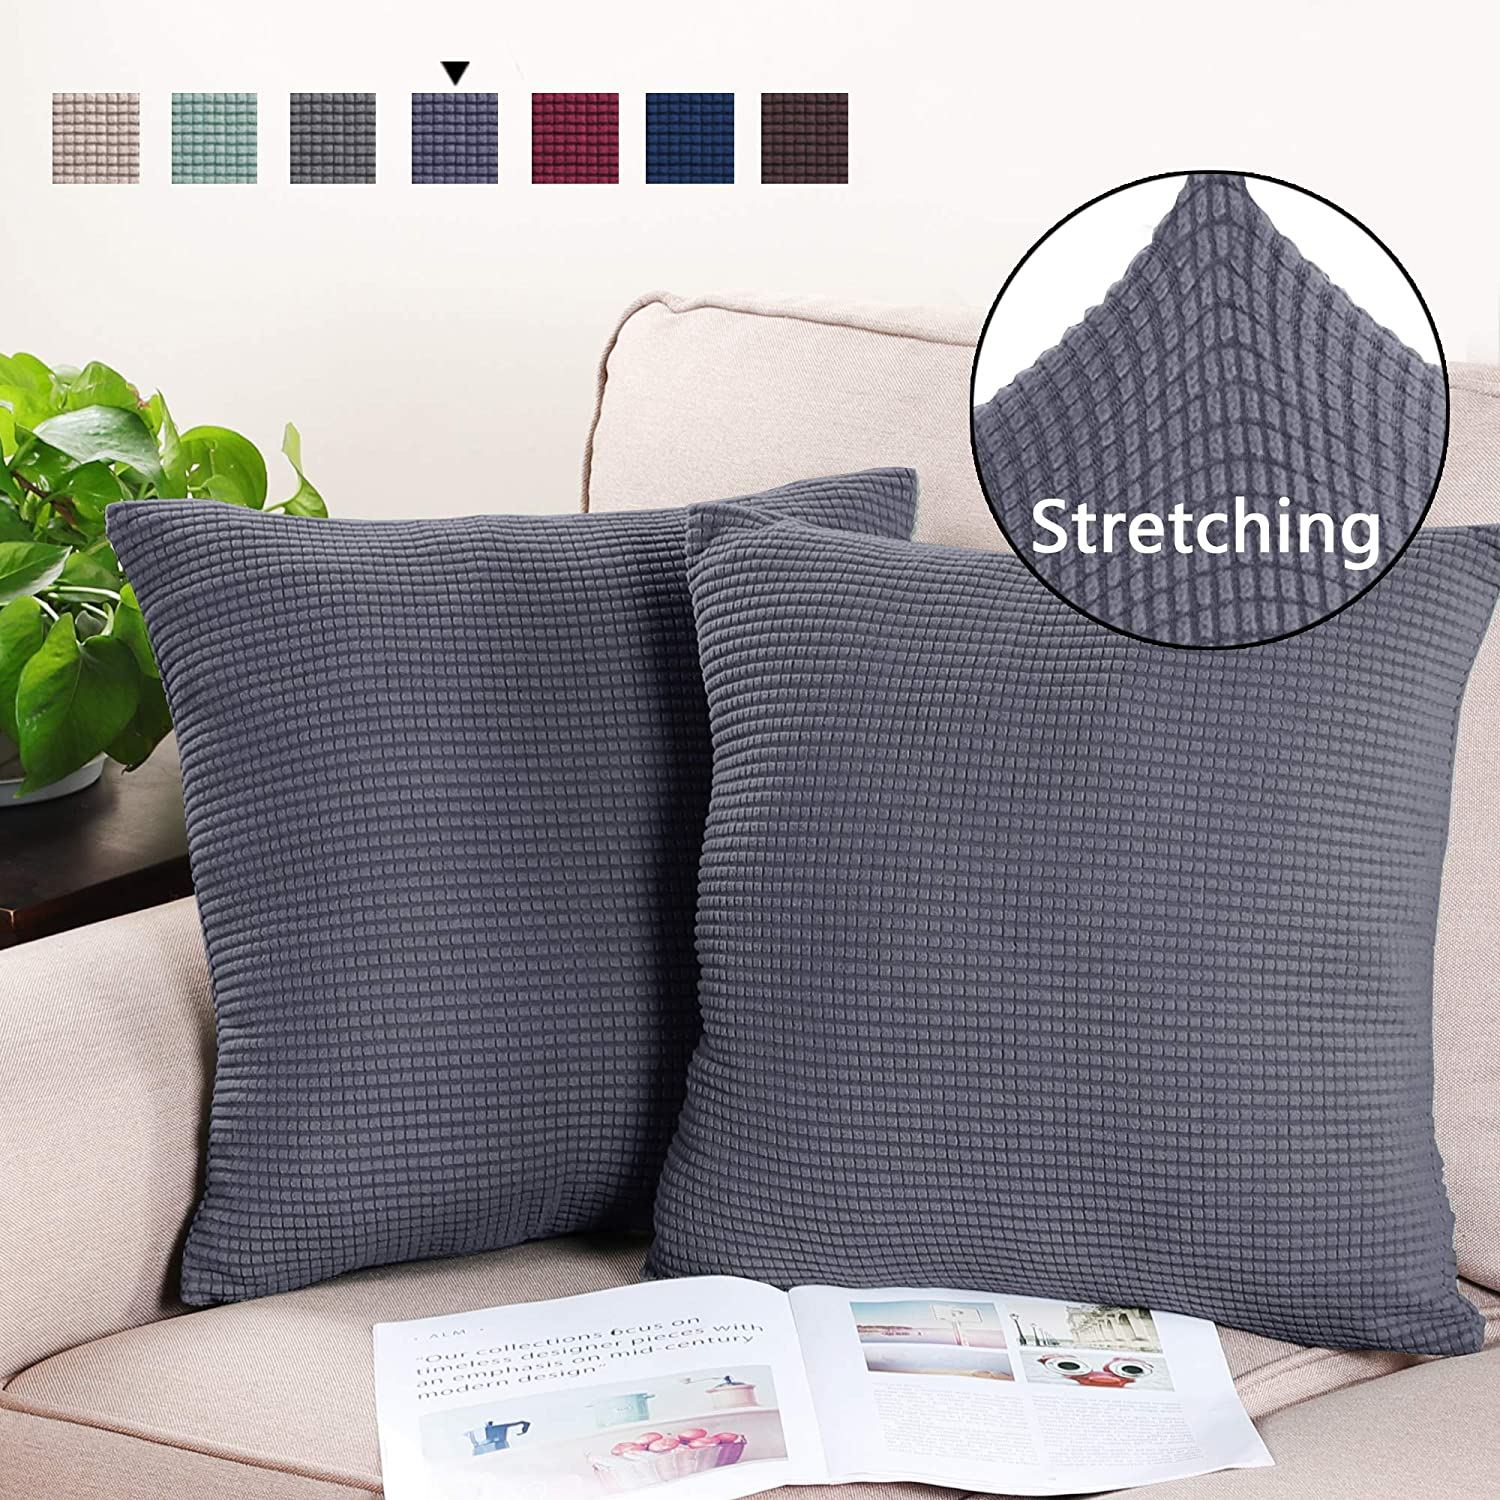 Ivory 18x18 2 Pack Pillow Covers Rich Jacquard Stretch Fabric High Spandex Soft Solid Decorative Square Throw Pillow Covers Set Cushion Cases Pillow Cases for Living Room//Couch